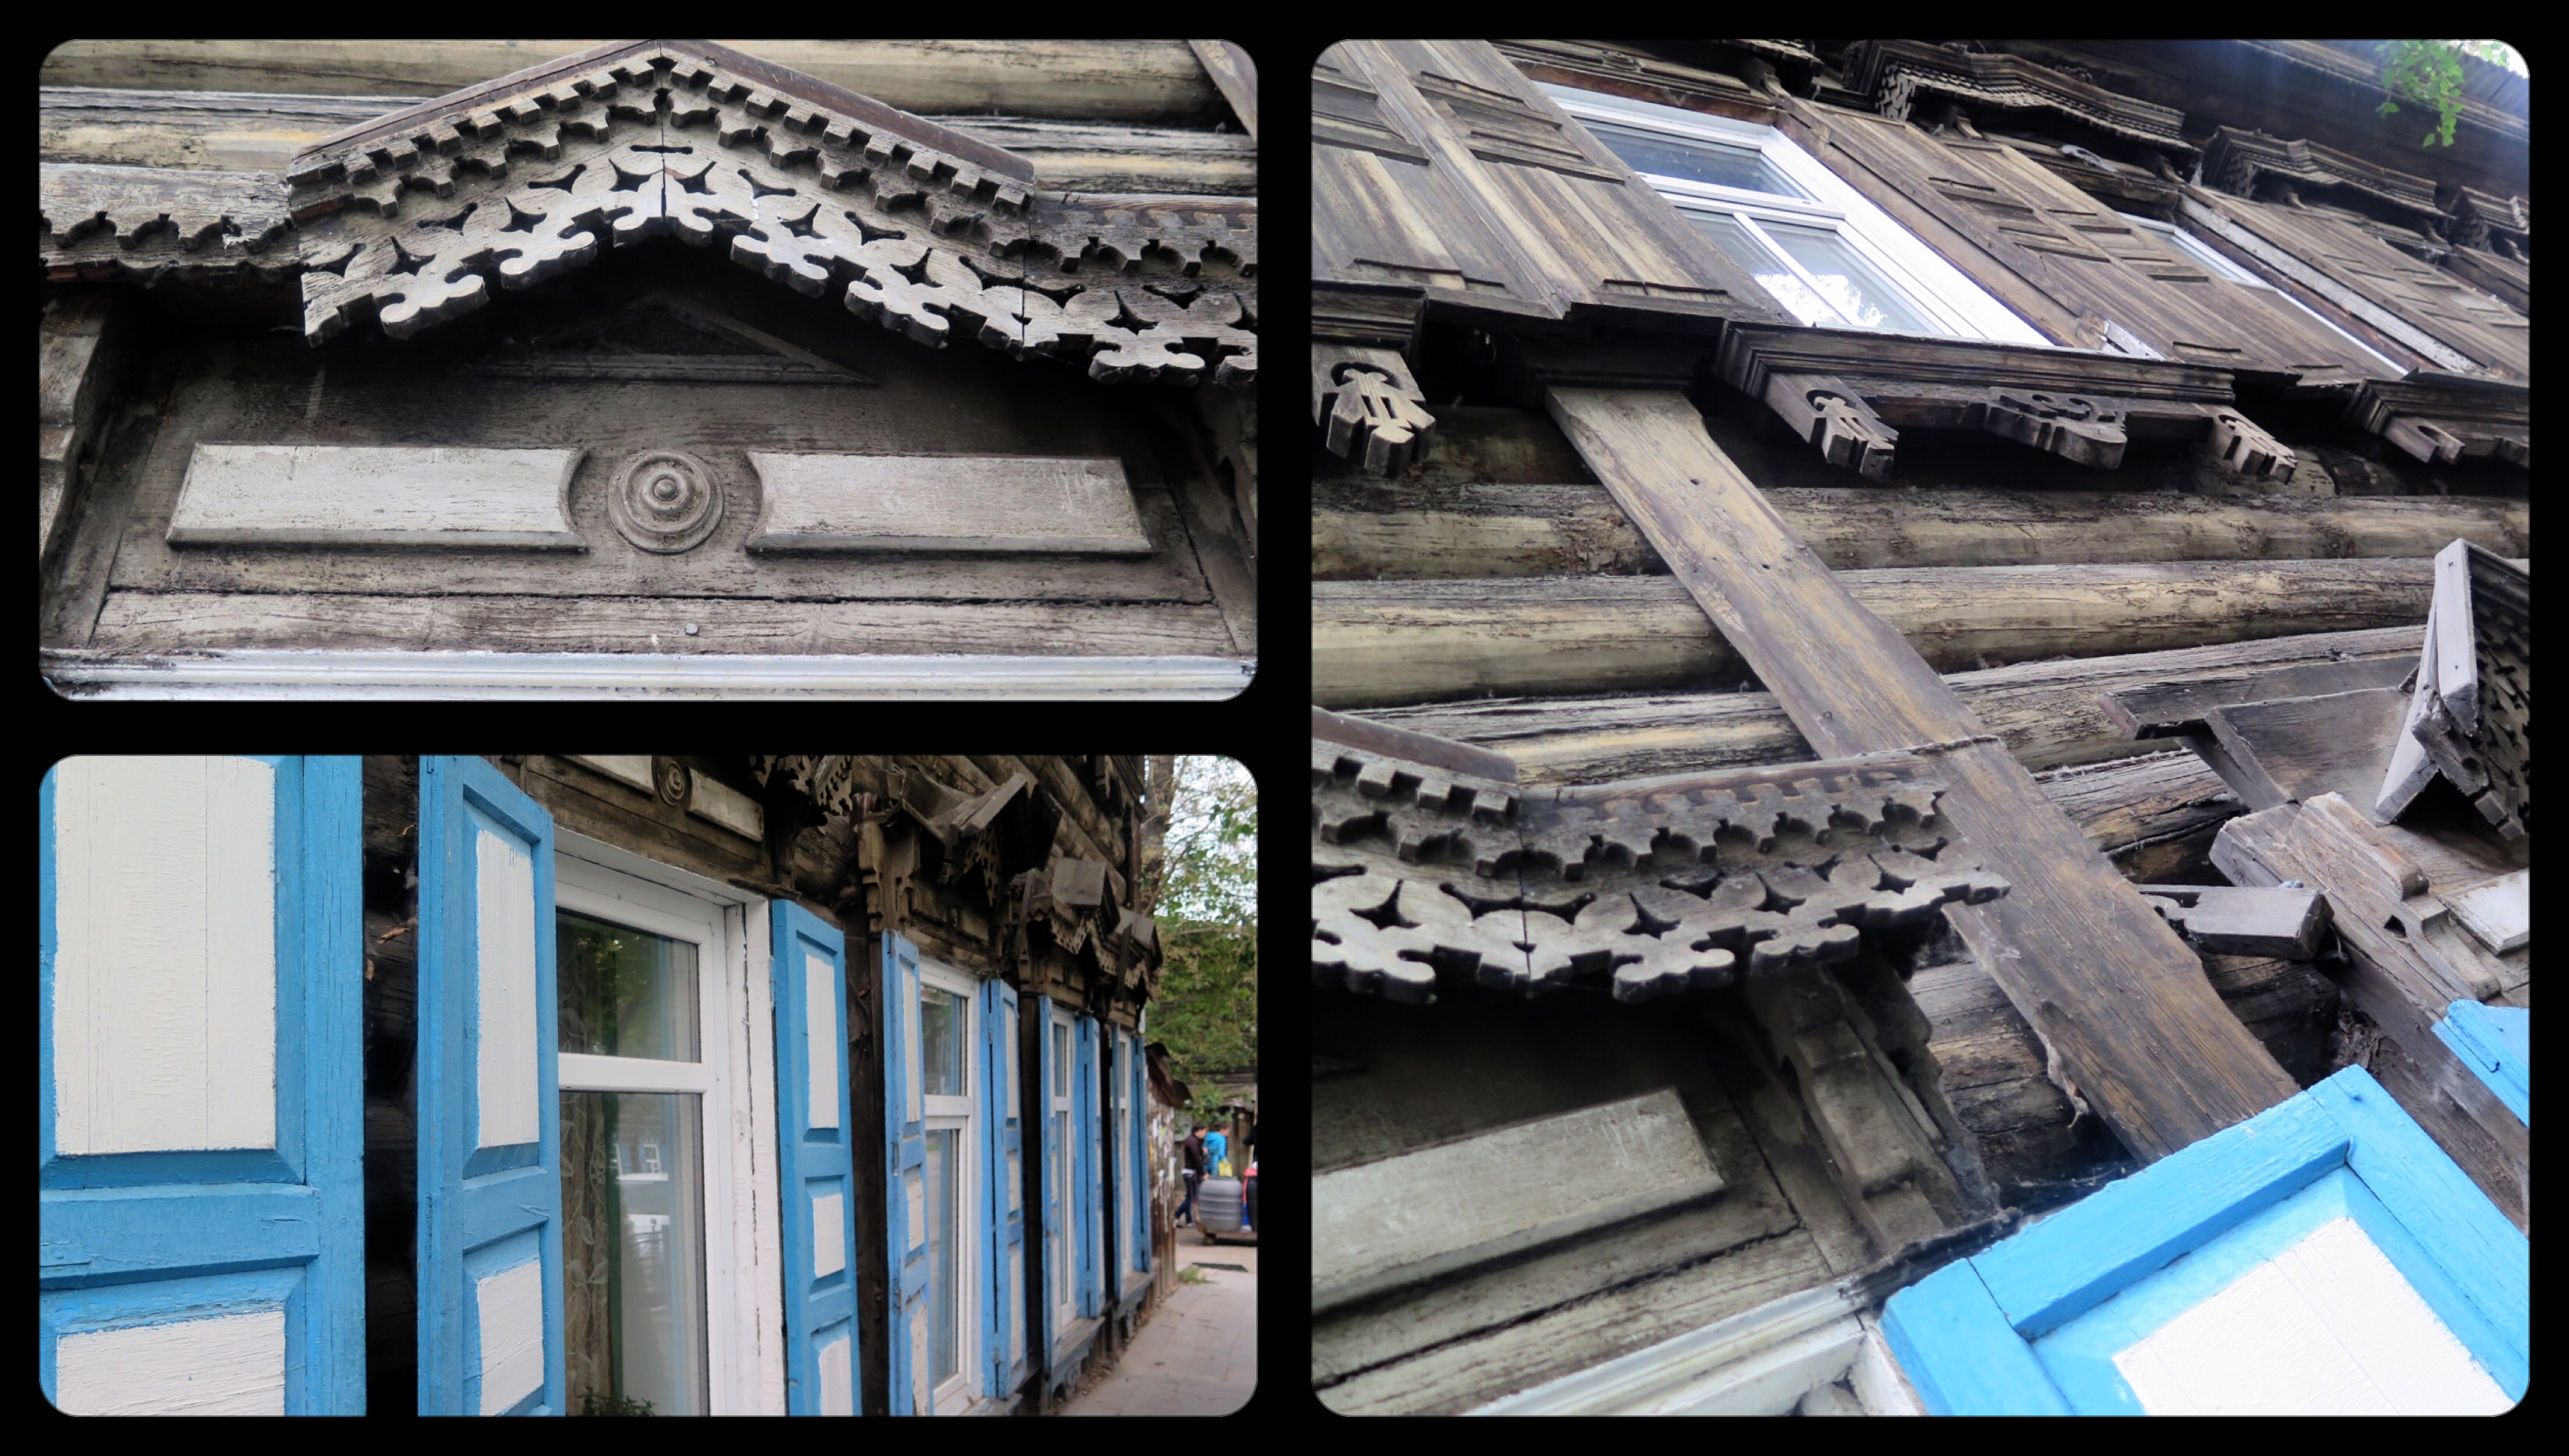 I loved the intricite woodwork and shutters we saw throughout the city.